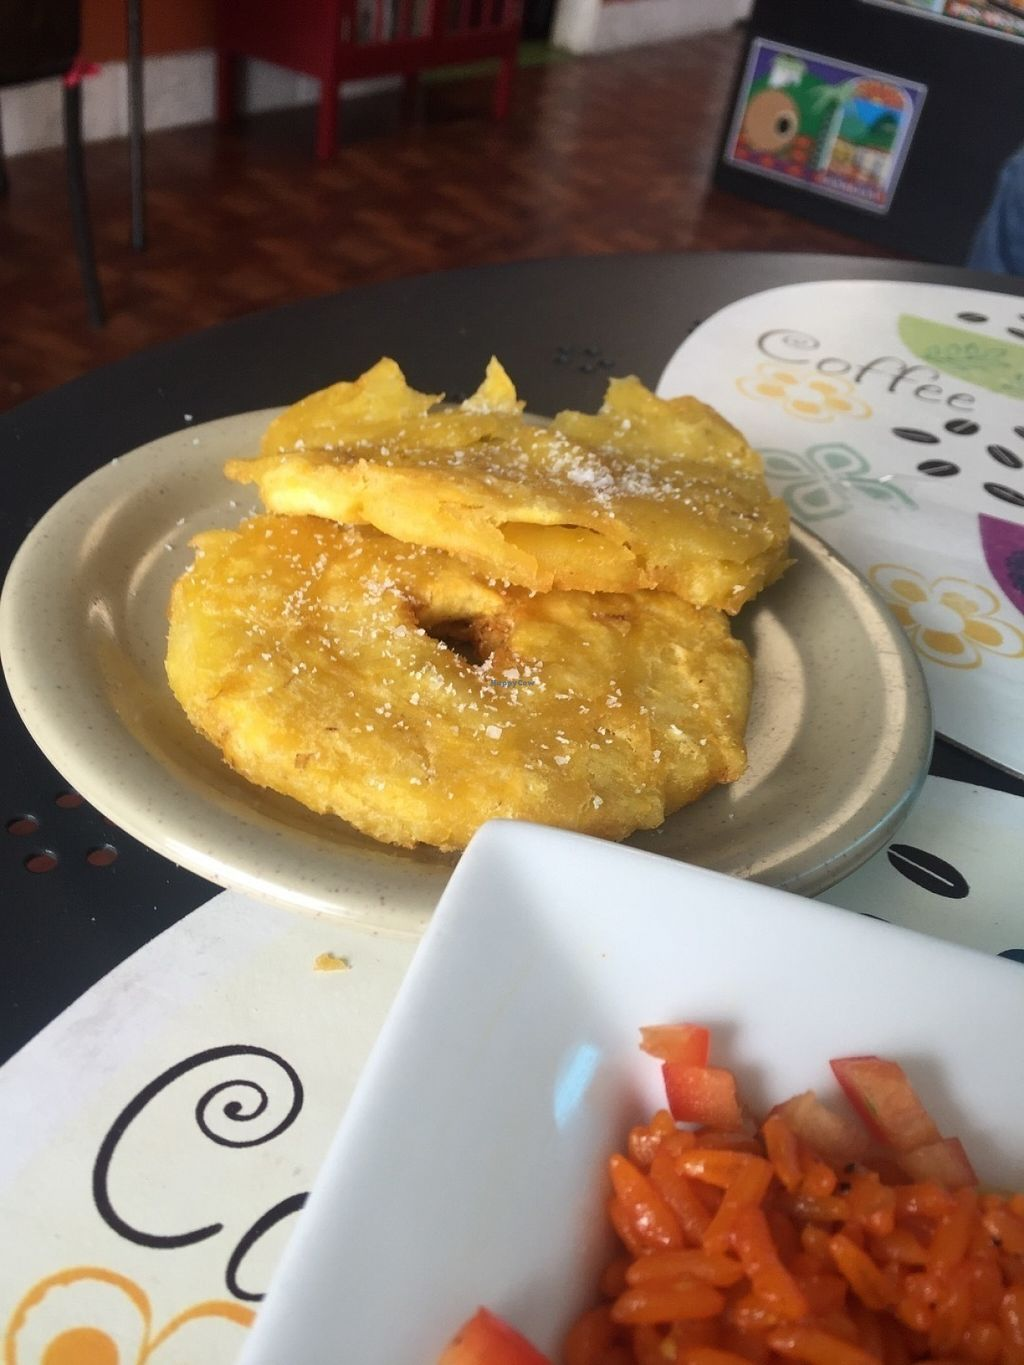 """Photo of Equelecua Cuban Cafe  by <a href=""""/members/profile/MissCindyPants"""">MissCindyPants</a> <br/>Tostones double friend unripe (savory) plantains. Soooooo GOOOOOOD!  <br/> July 25, 2016  - <a href='/contact/abuse/image/59617/162302'>Report</a>"""